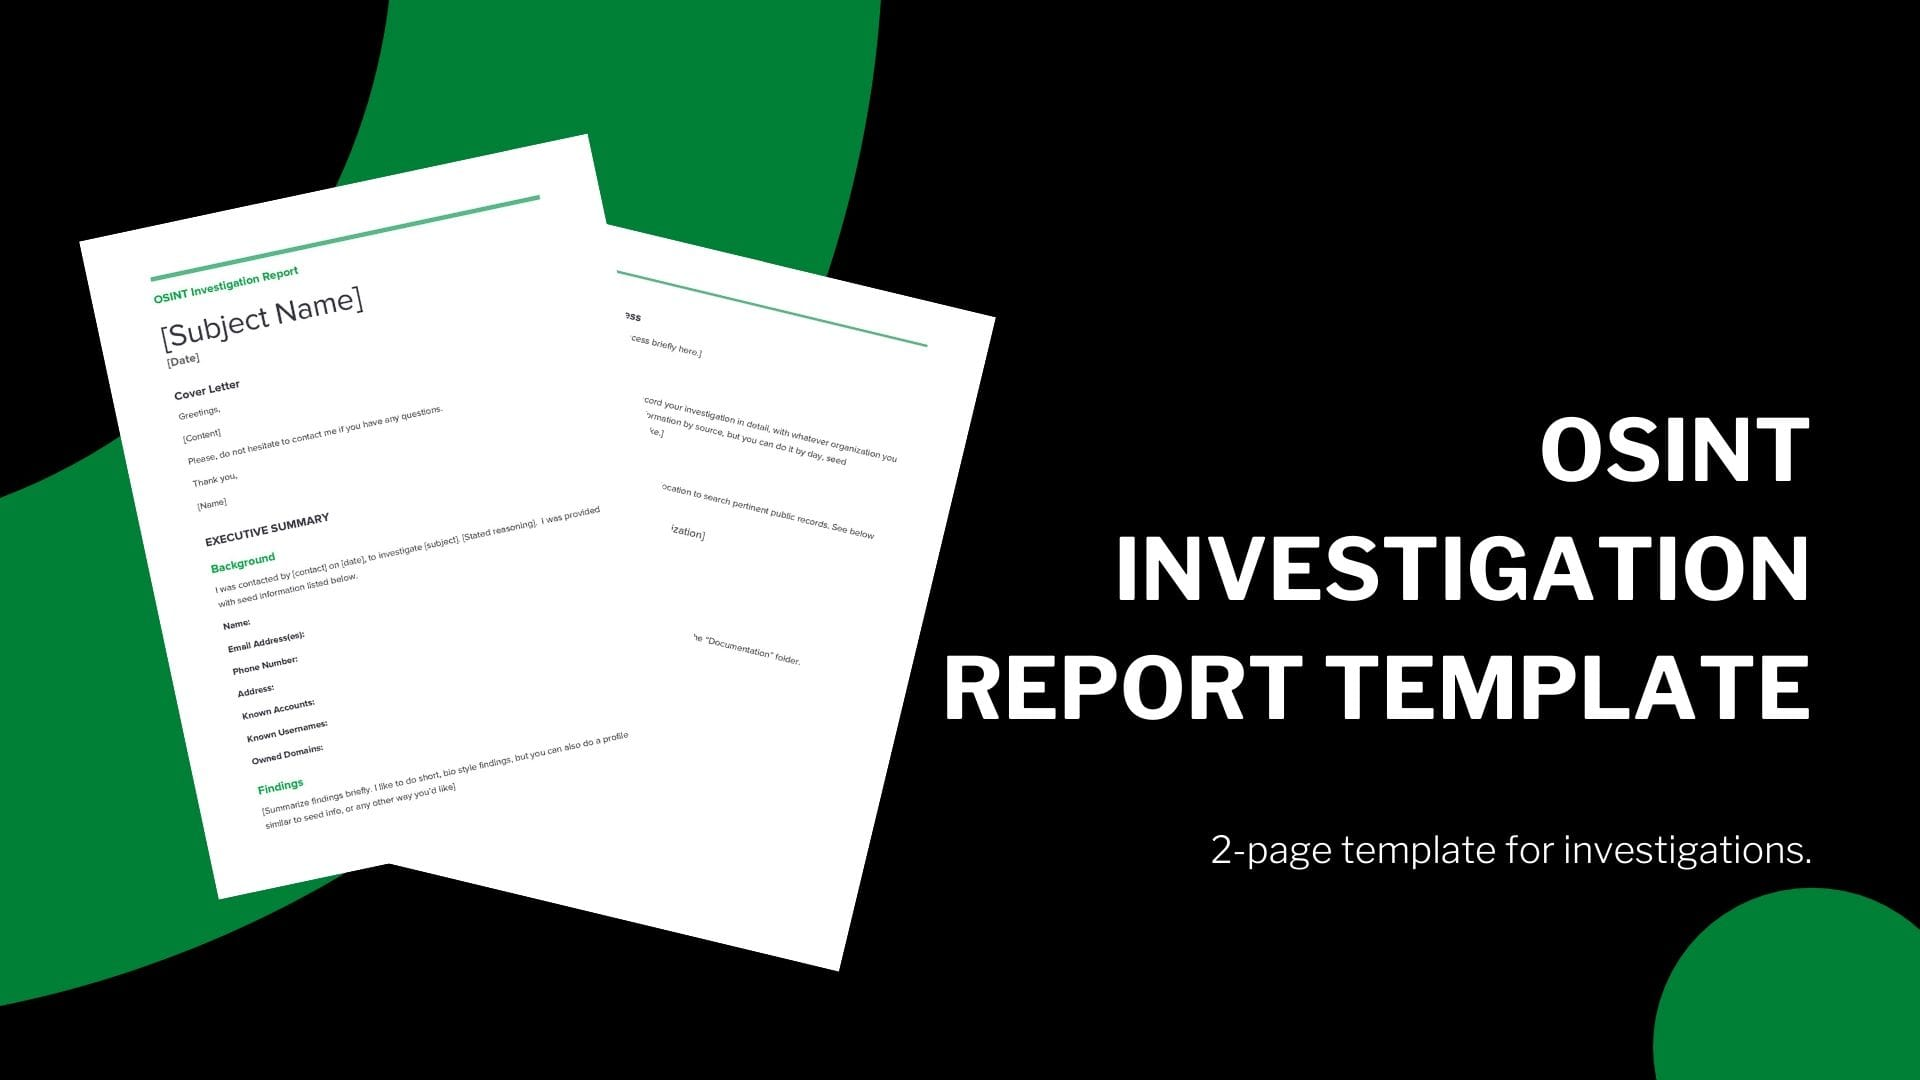 send you an osint investigation report template With Me Report Template